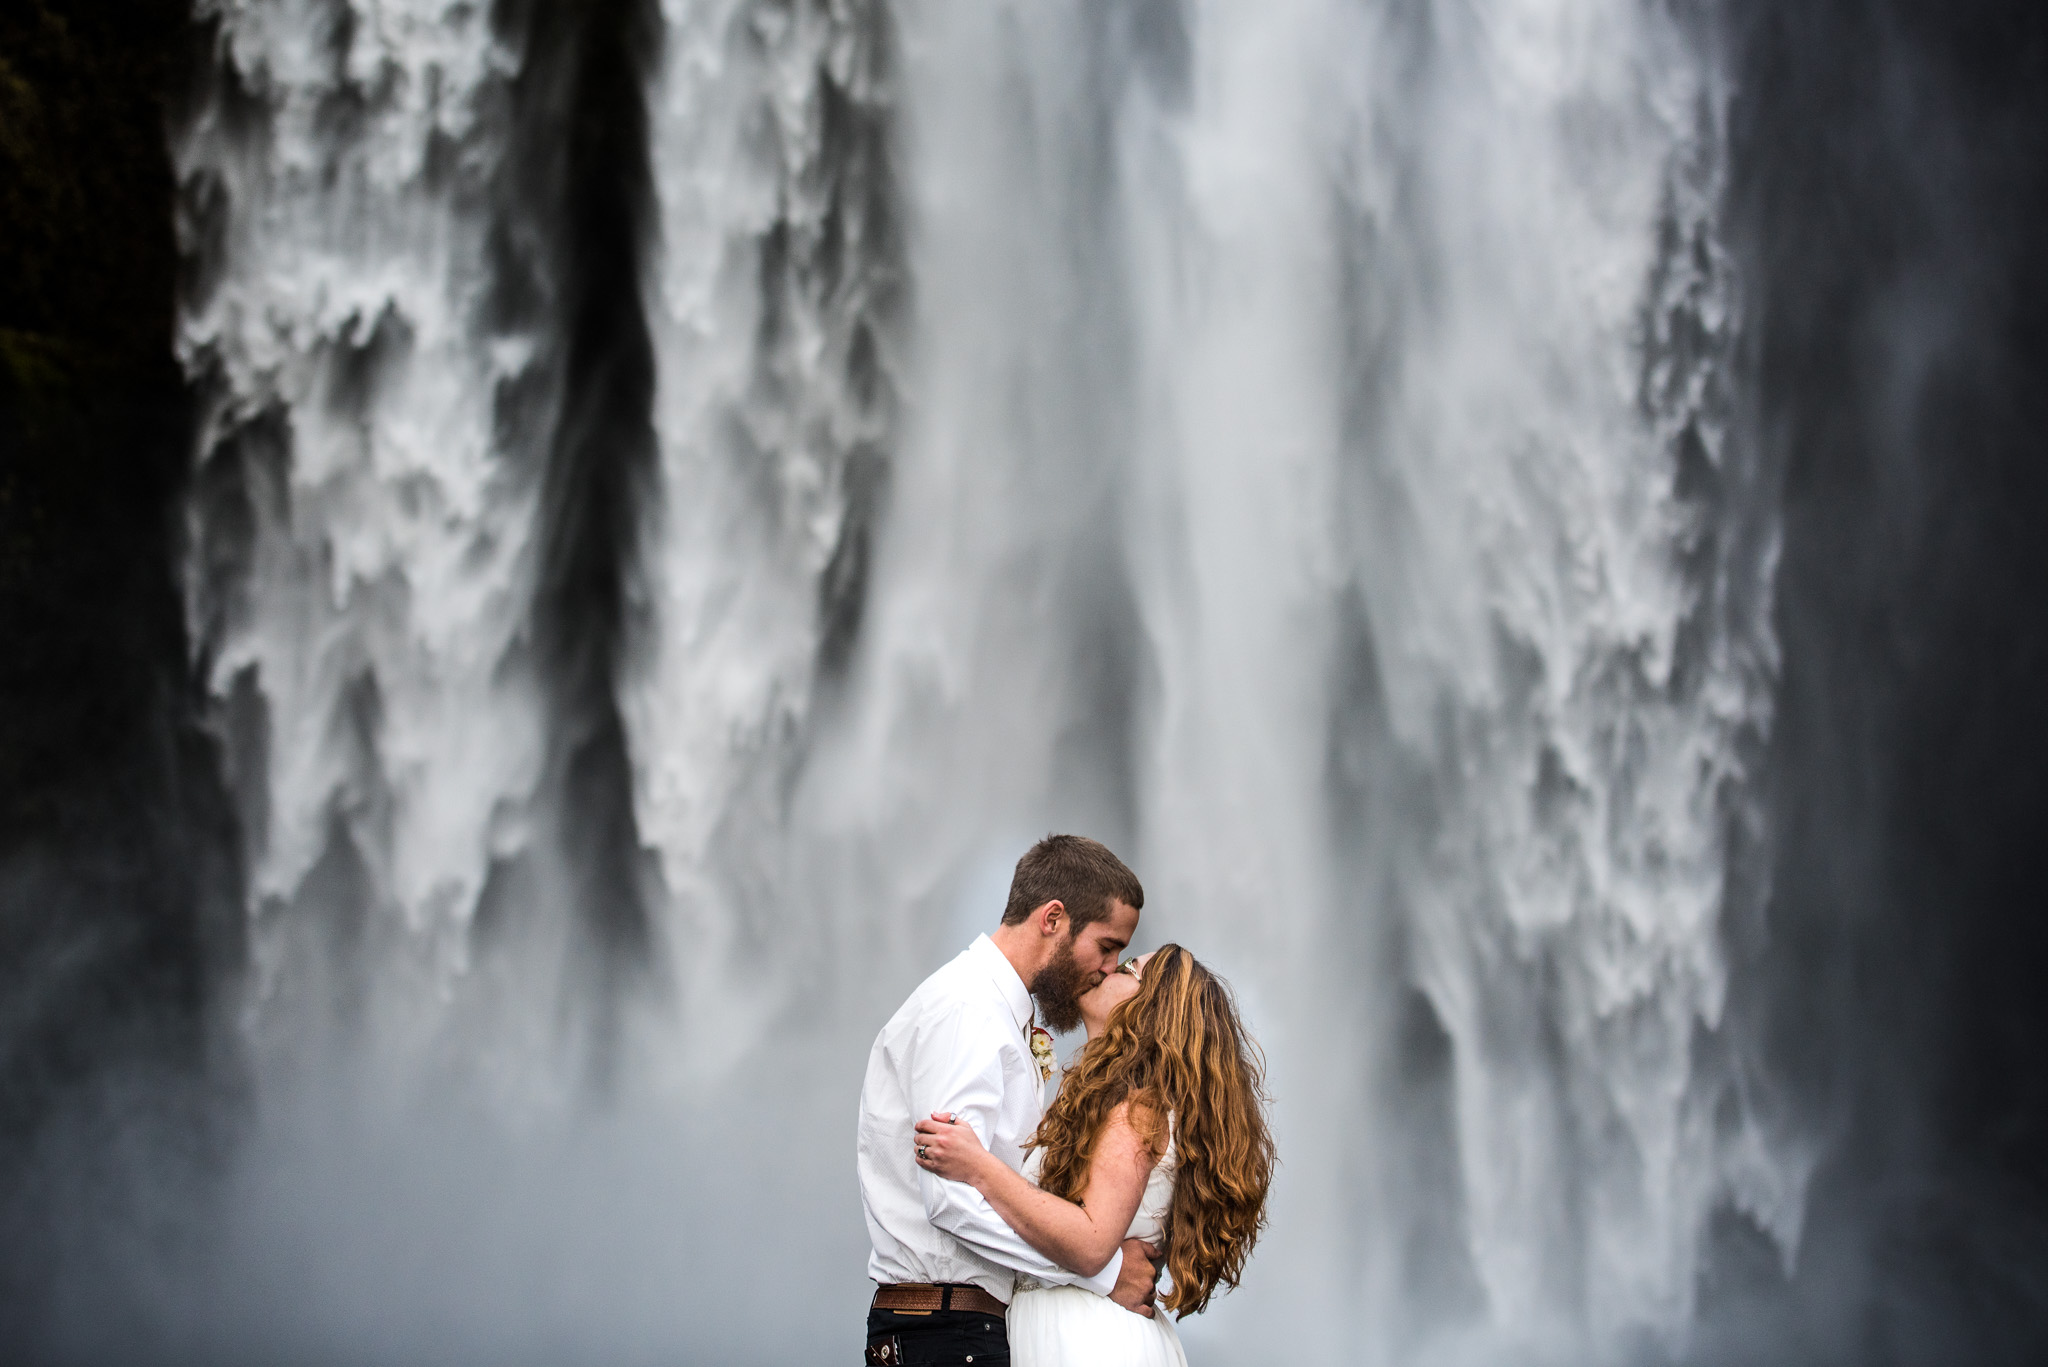 south-iceland-elopement-victoria-wedding-photographers-26.jpg